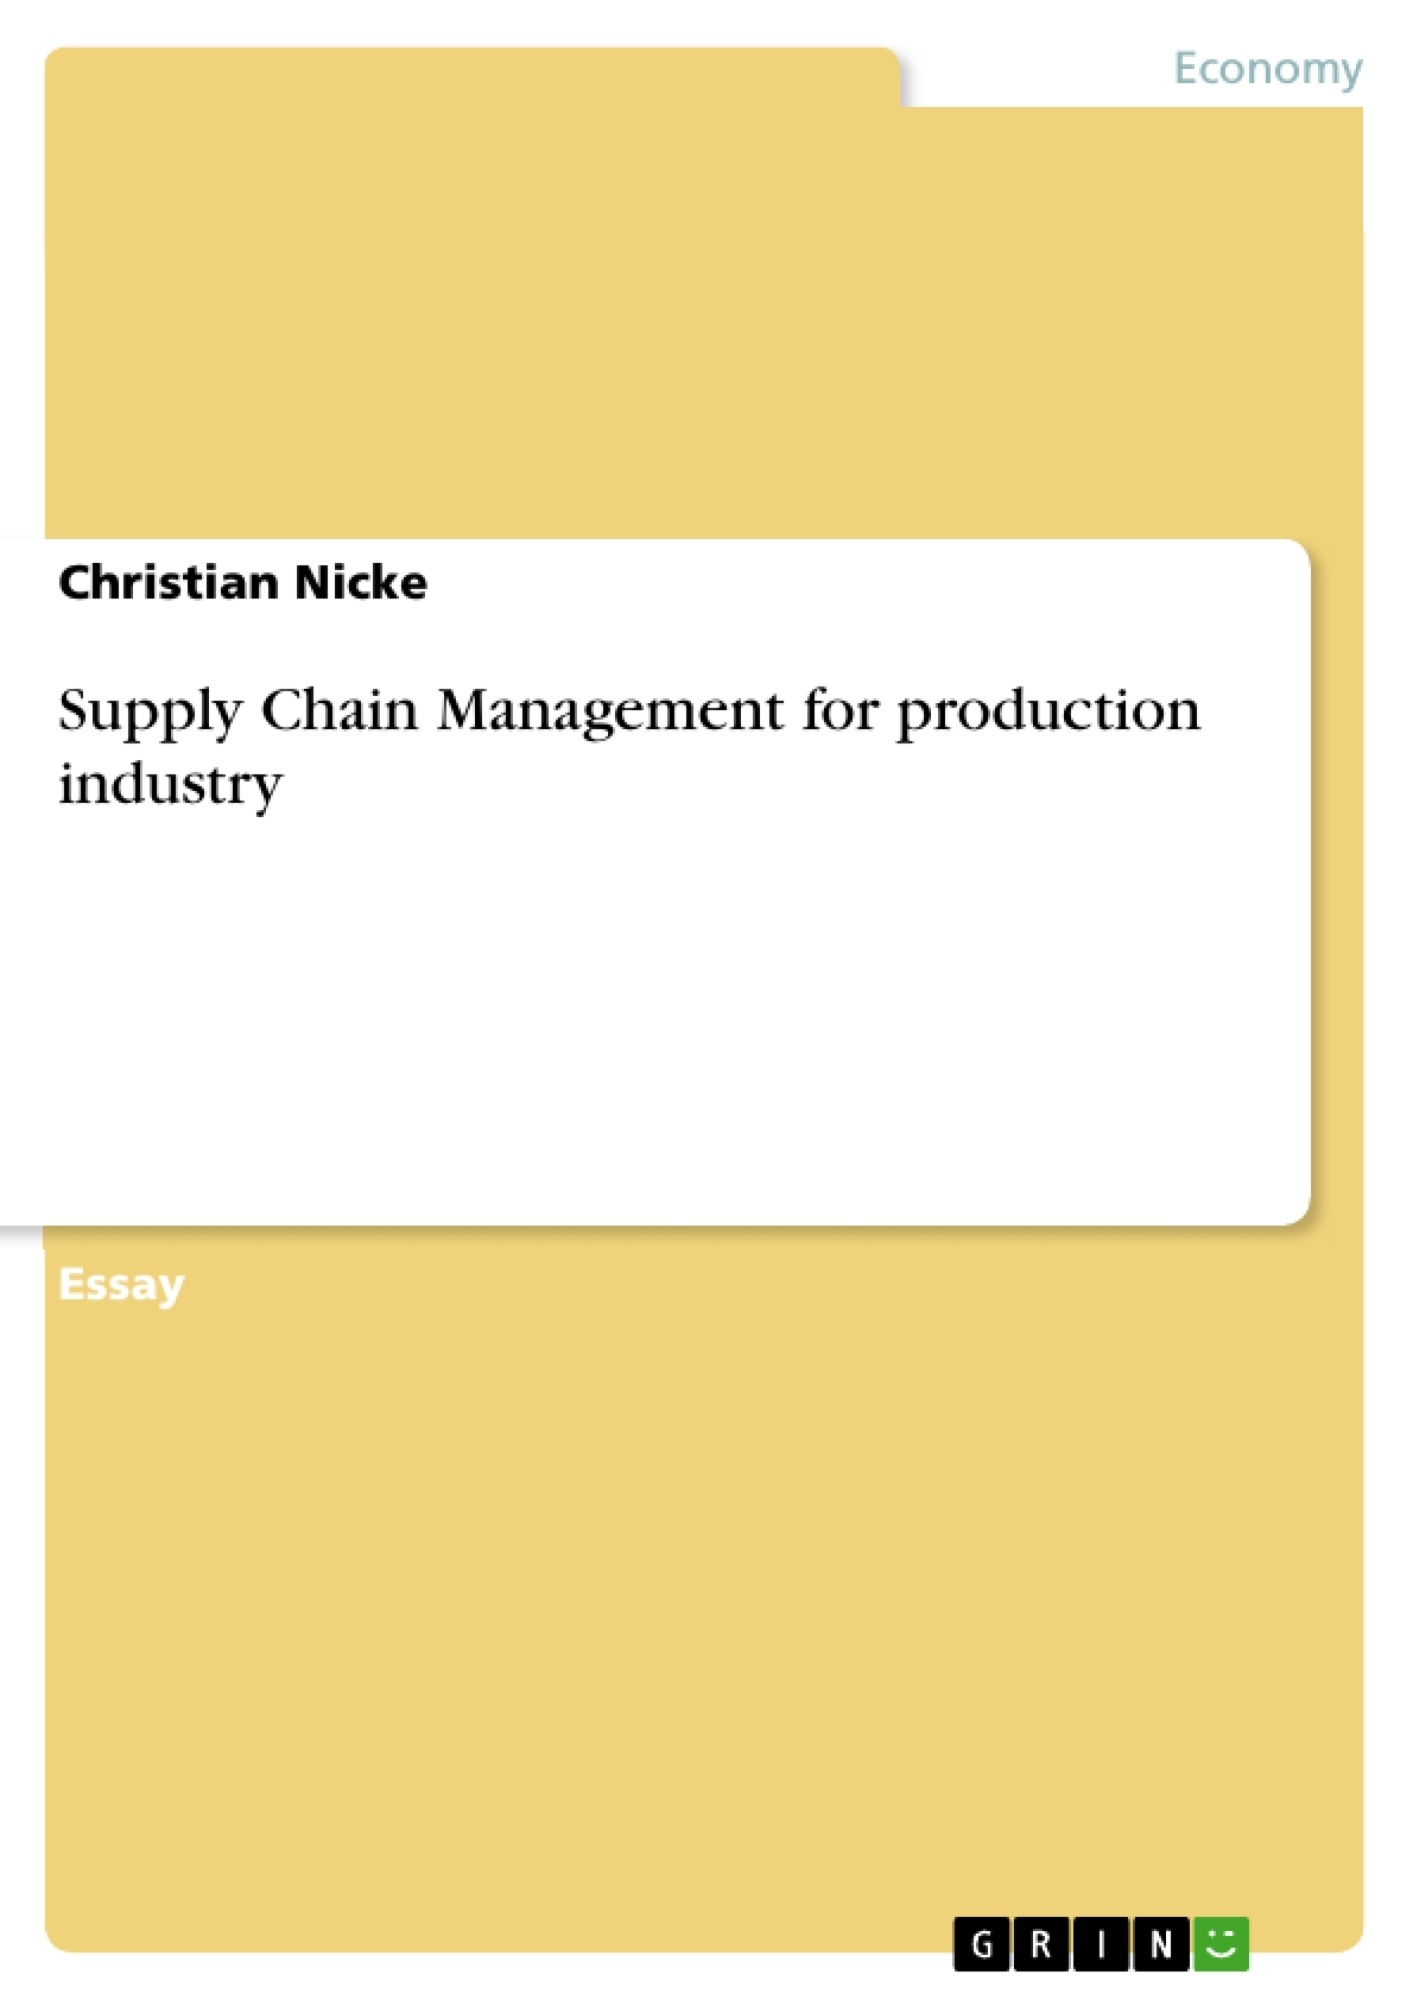 supply chain management essay hook in a essay a supply chain is a system of organizations people technology activities information and resources involved in moving a product or service from supplier